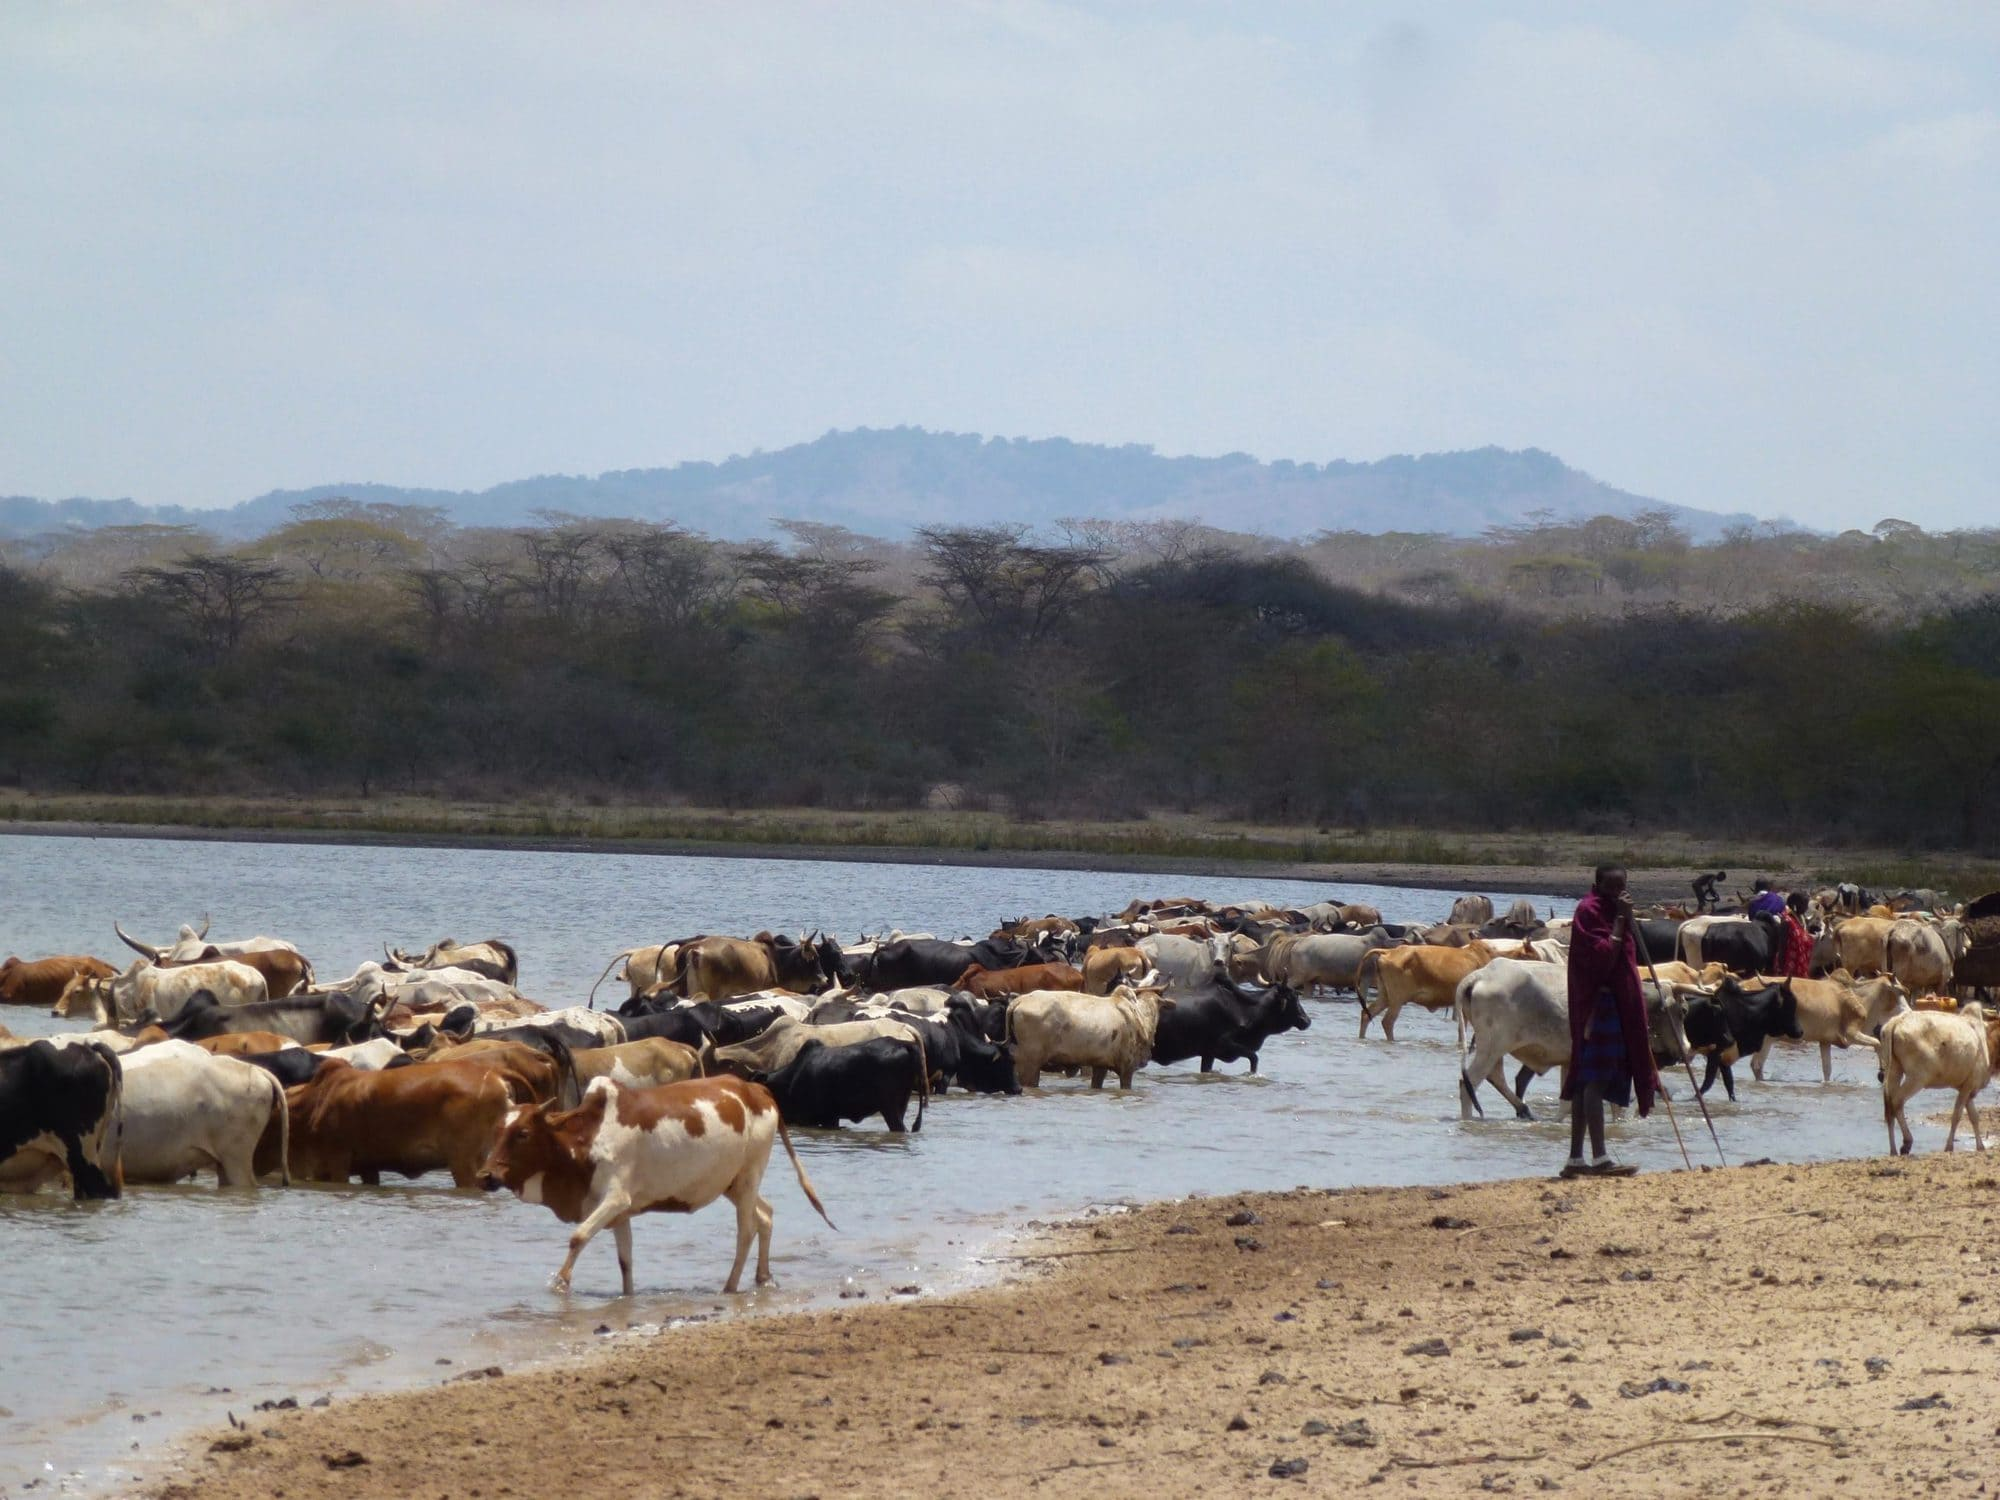 A Maasai pastoralist taking livestock to drink from the Olkitikiti Dam, in Olkitikiti village, Kiteto, Tanzania (photo credit: ILRI/Fiona Flintan)